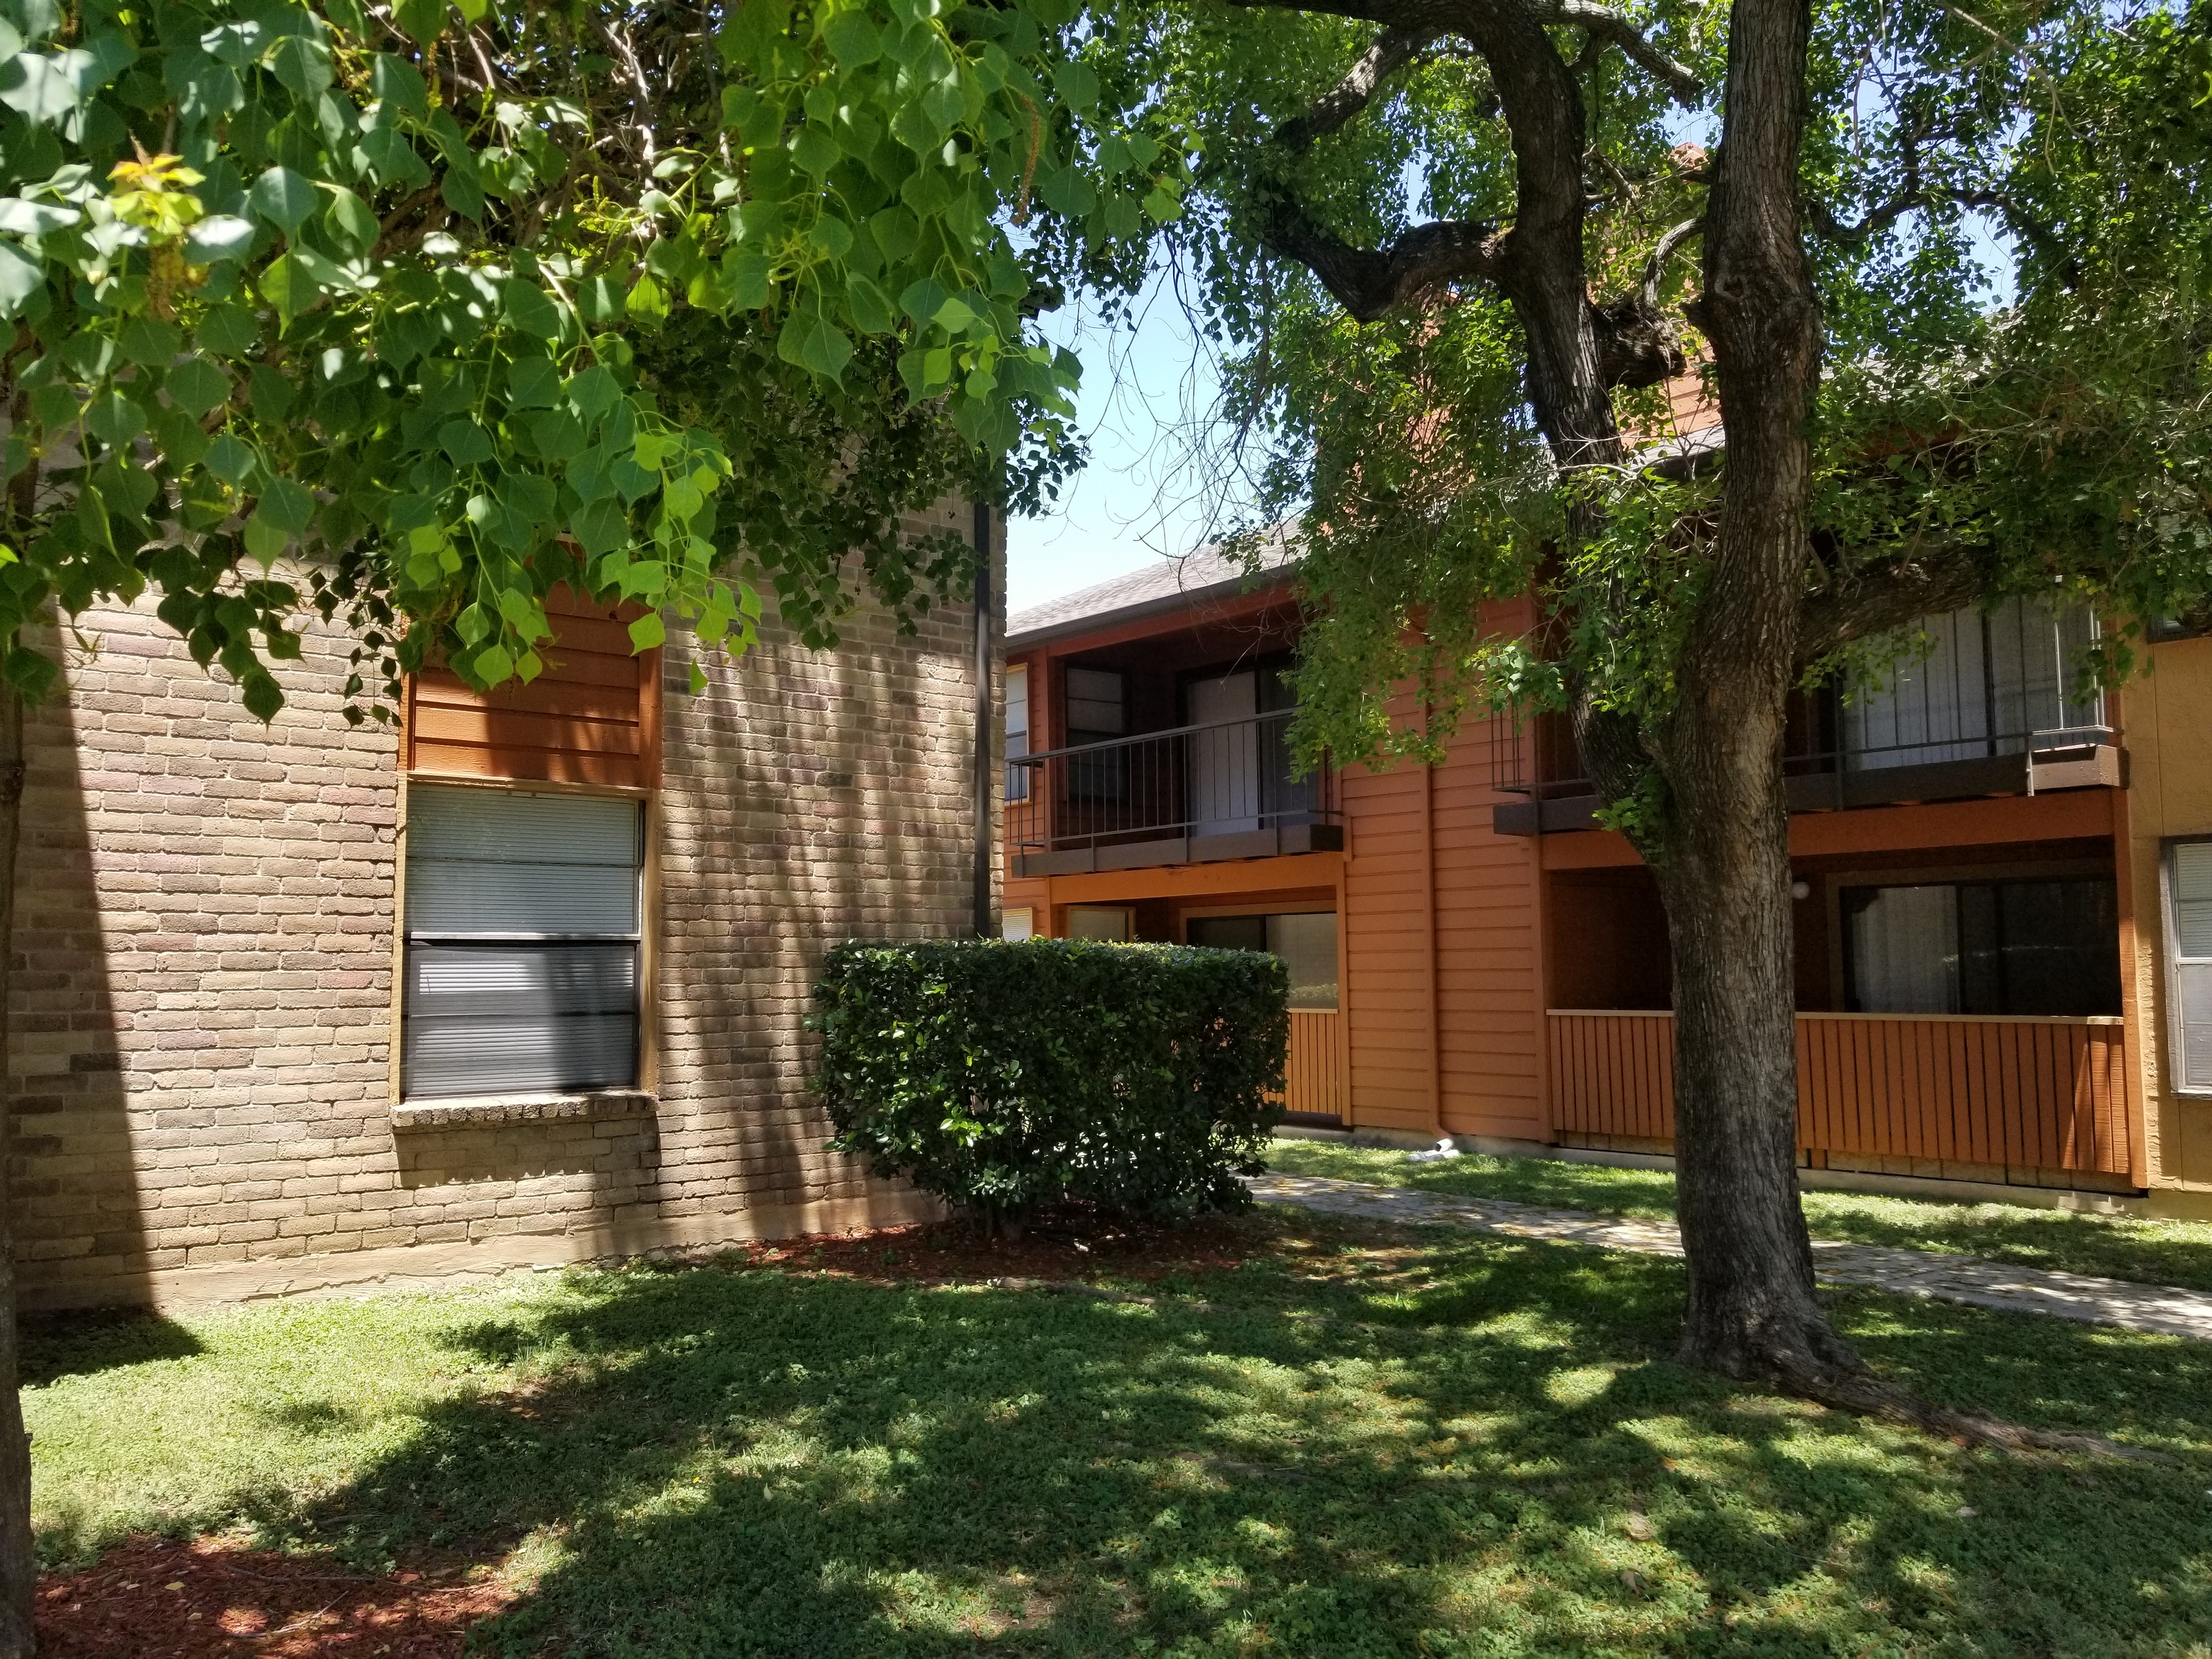 Iron Horse Valley Apartments image 7